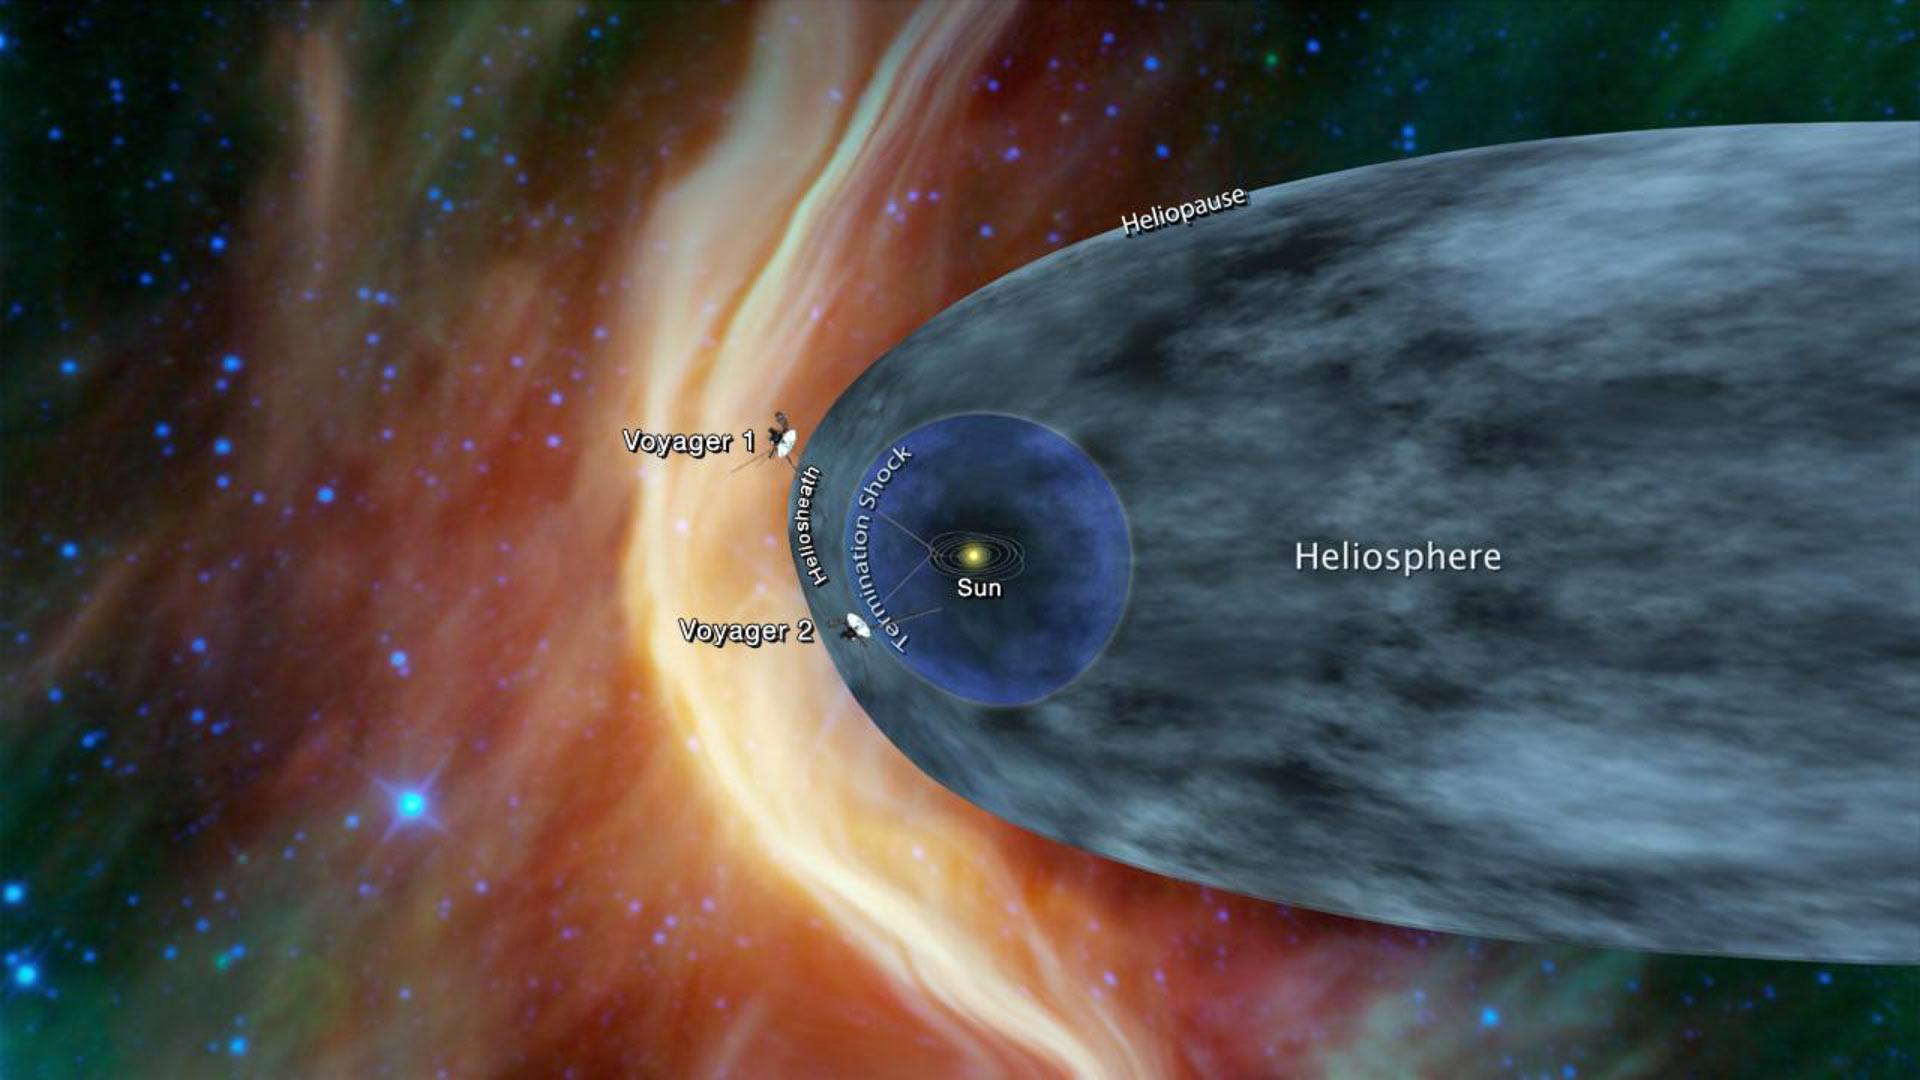 NASA's space probe nearing interstellar space